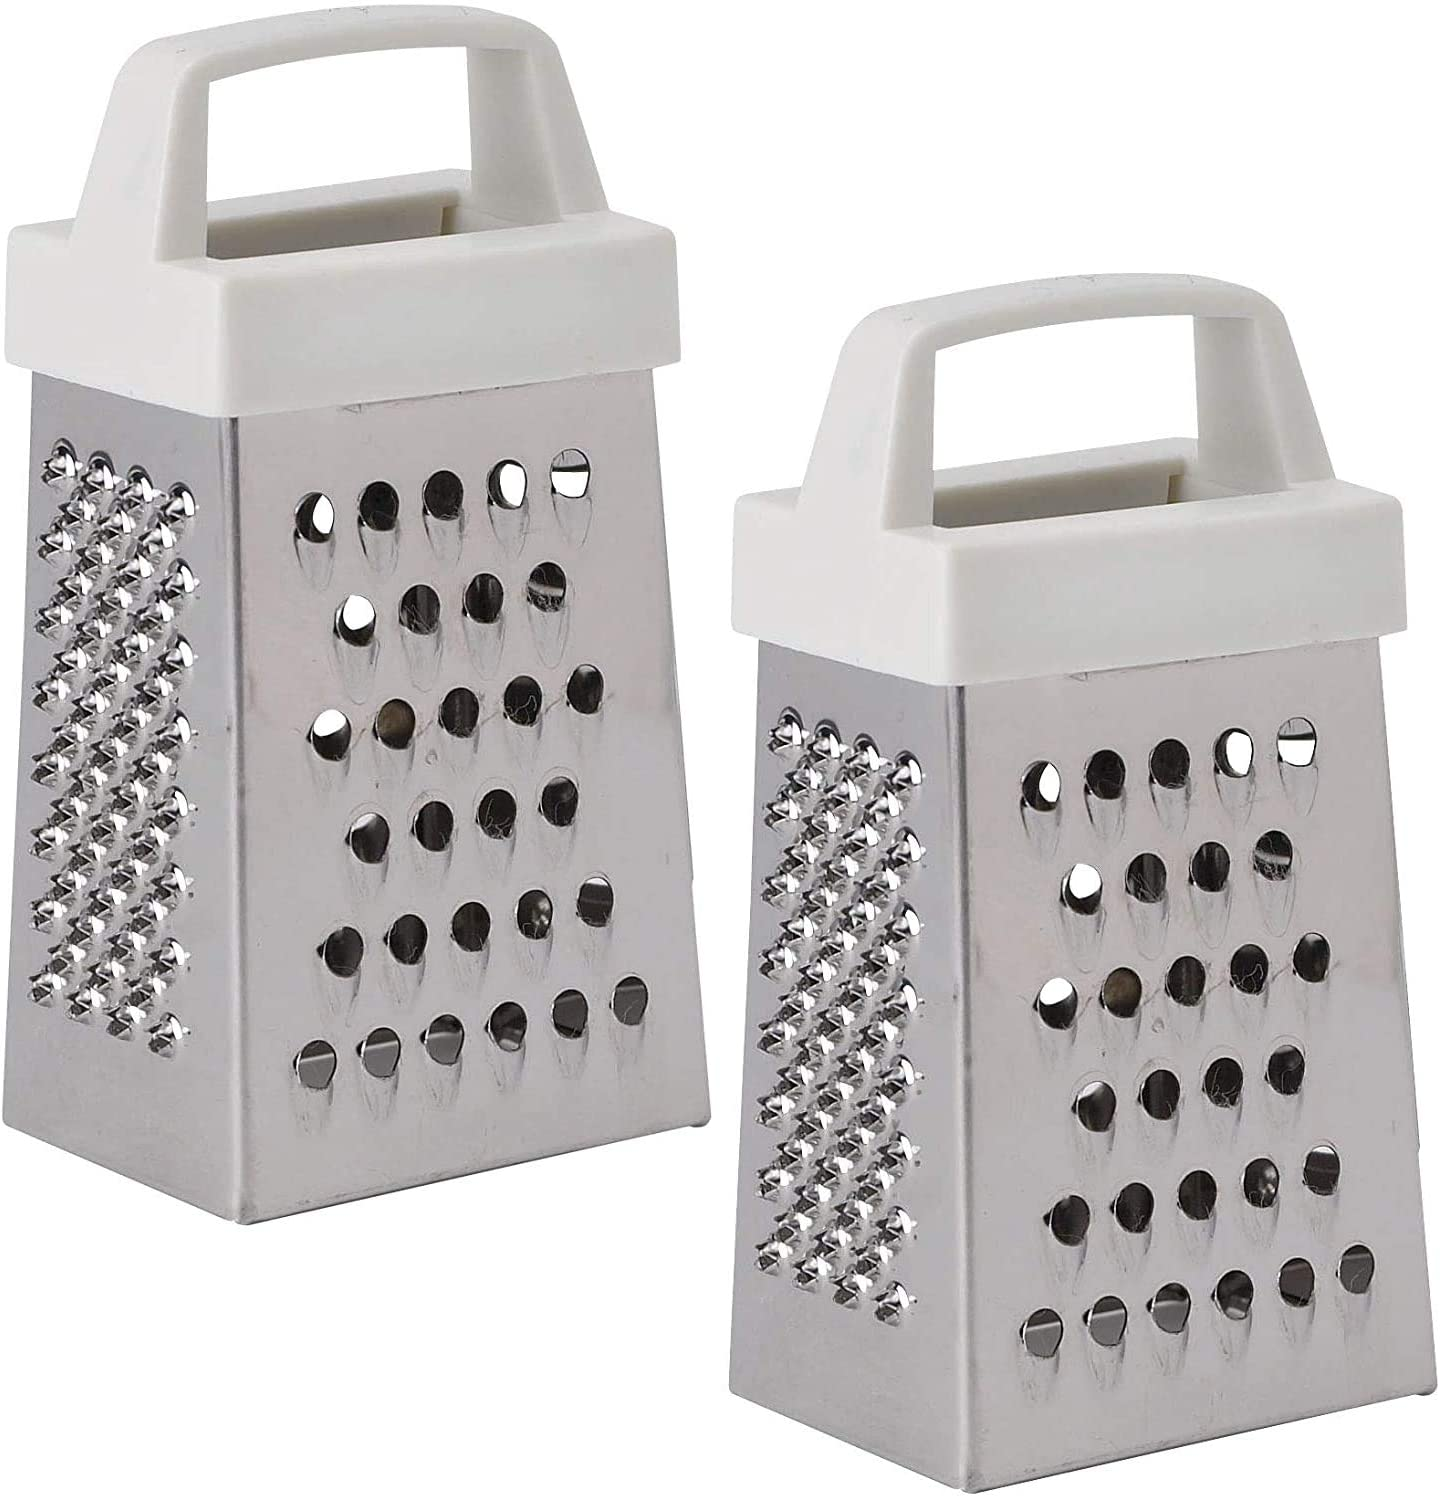 Stainless Steel Mini Cheese Grater 2 Pieces Perfect Stix Mini Garlic Grater Magnetic Holder Handheld Cheese Peel Cutter